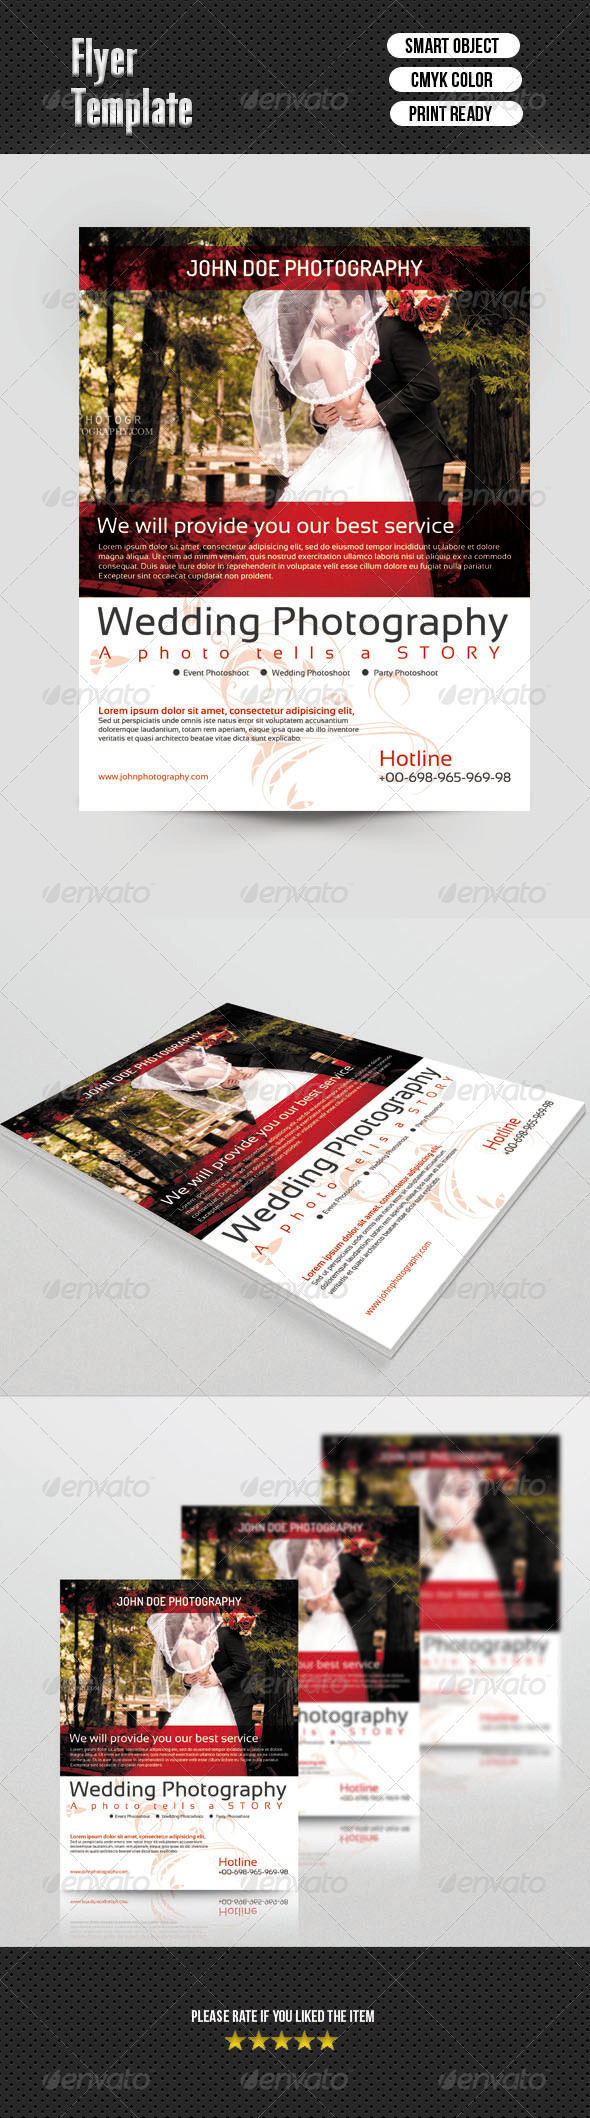 GraphicRiver Flyer for Wedding Photographer 6891538